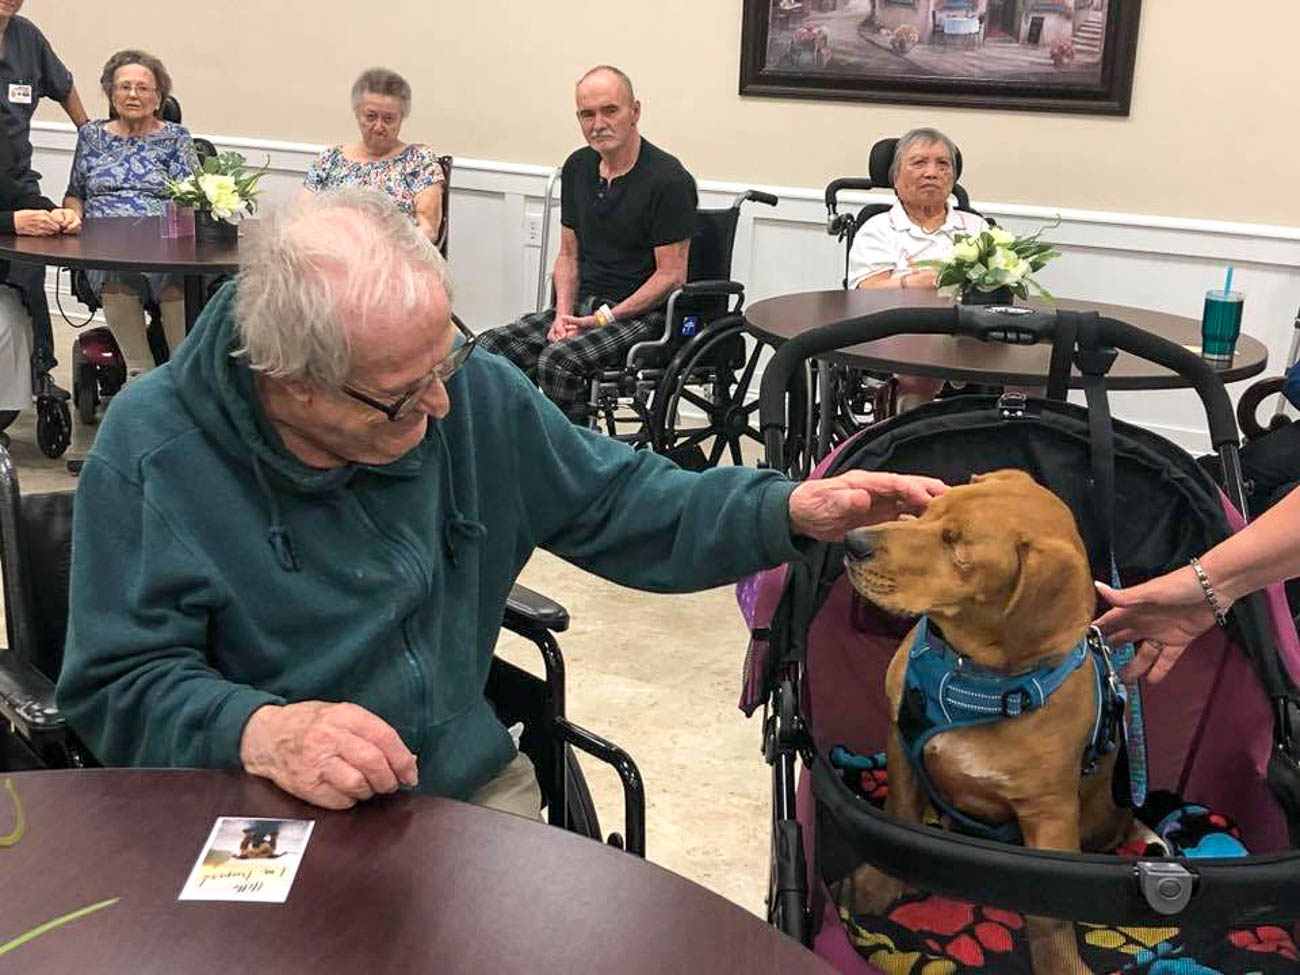 Trooper now spends his days around the Tri-State, meeting people and raising awareness for various causes. He brings smiles and joy wherever he goes. / Image courtesy of The Trooper Telegraph // Published: 9.8.19